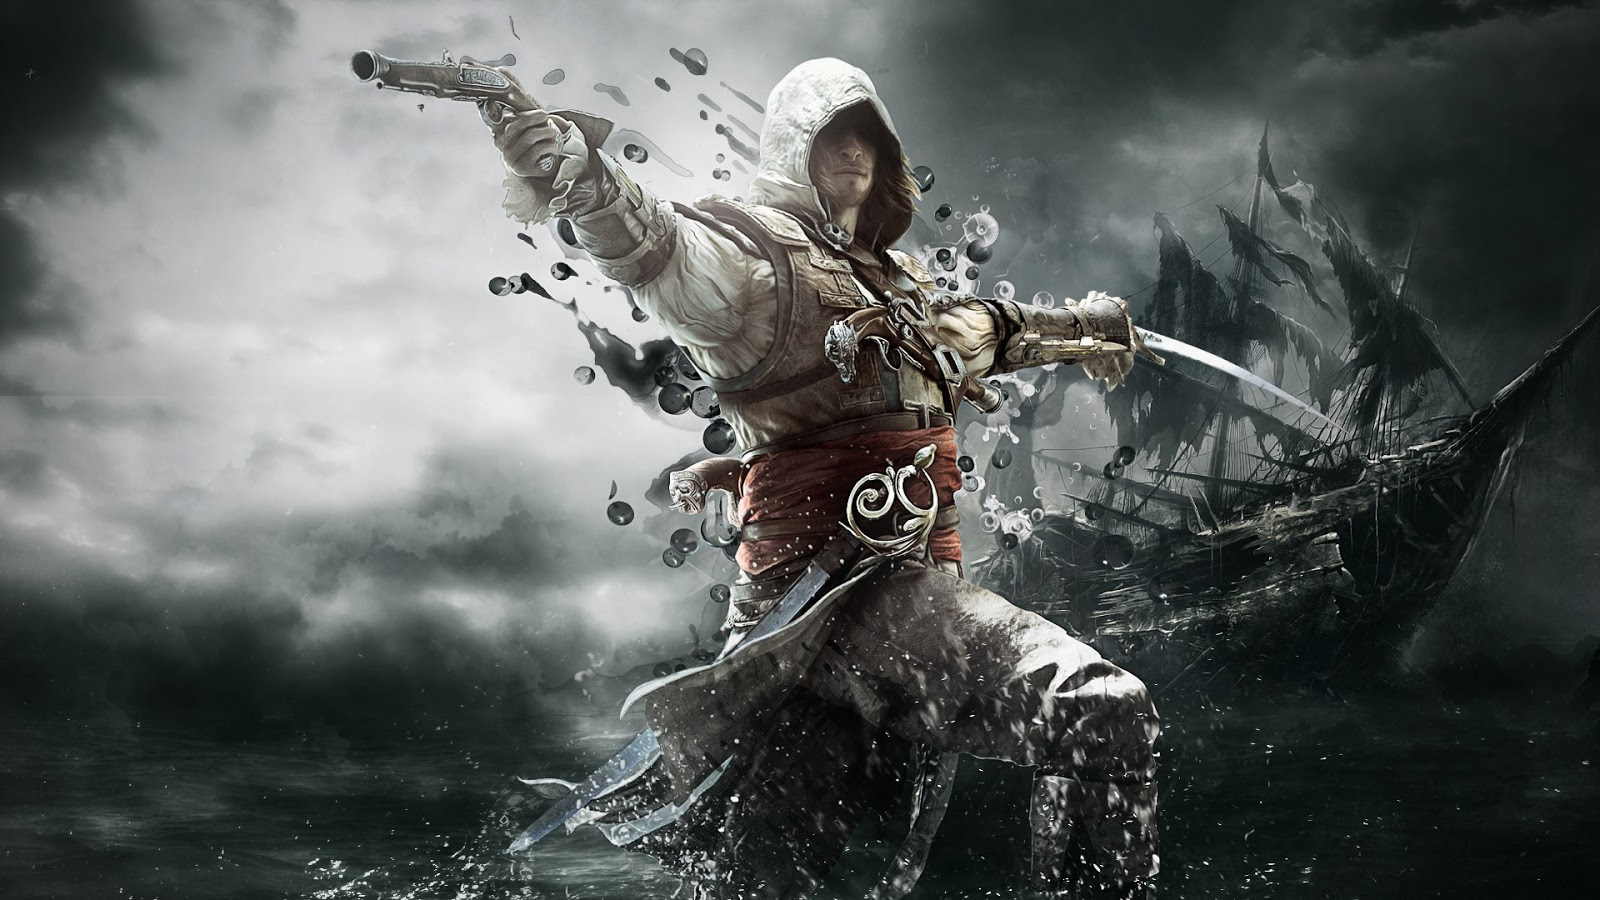 Assassin S Creed 4 Hd Wallpapers